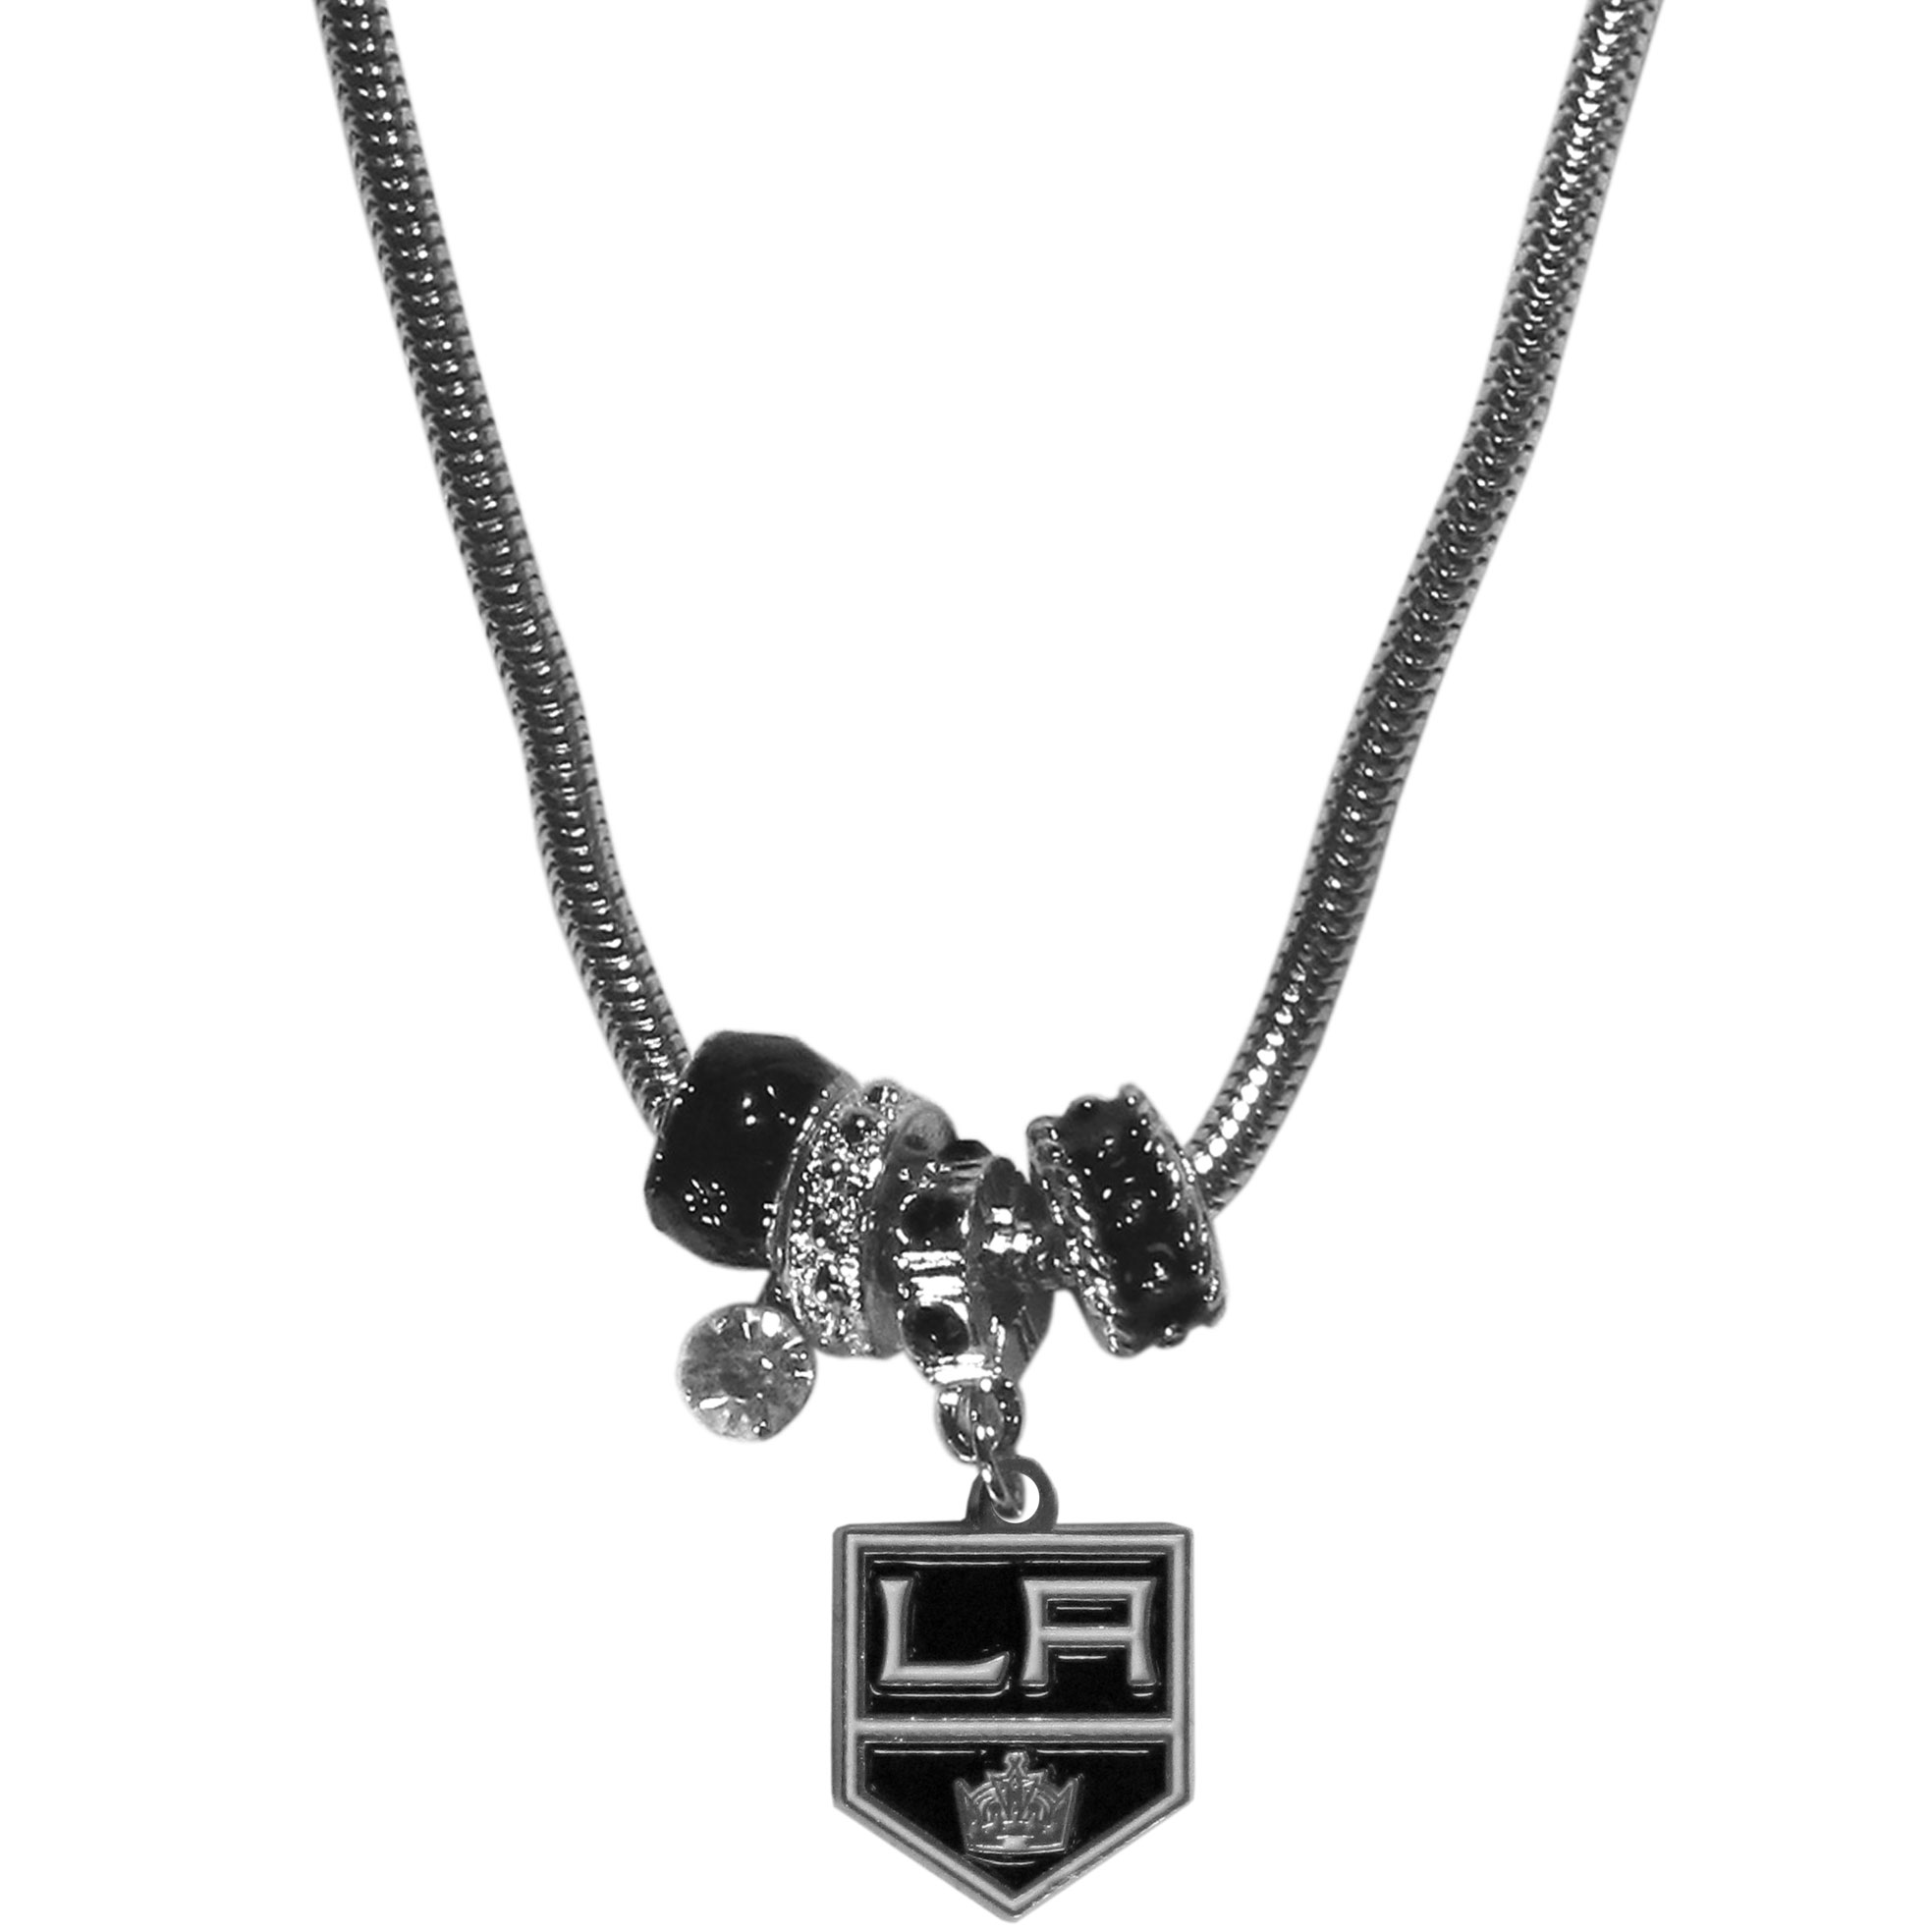 Los Angeles Kings Euro Bead Necklace - We have combined the wildly popular Euro style beads with your favorite team to create our Los Angeles Kings bead necklace. The 18 inch snake chain features 4 Euro beads with enameled Los Angeles Kings colors and rhinestone accents with a high polish, nickel free charm and rhinestone charm. Perfect way to show off your Los Angeles Kings pride.